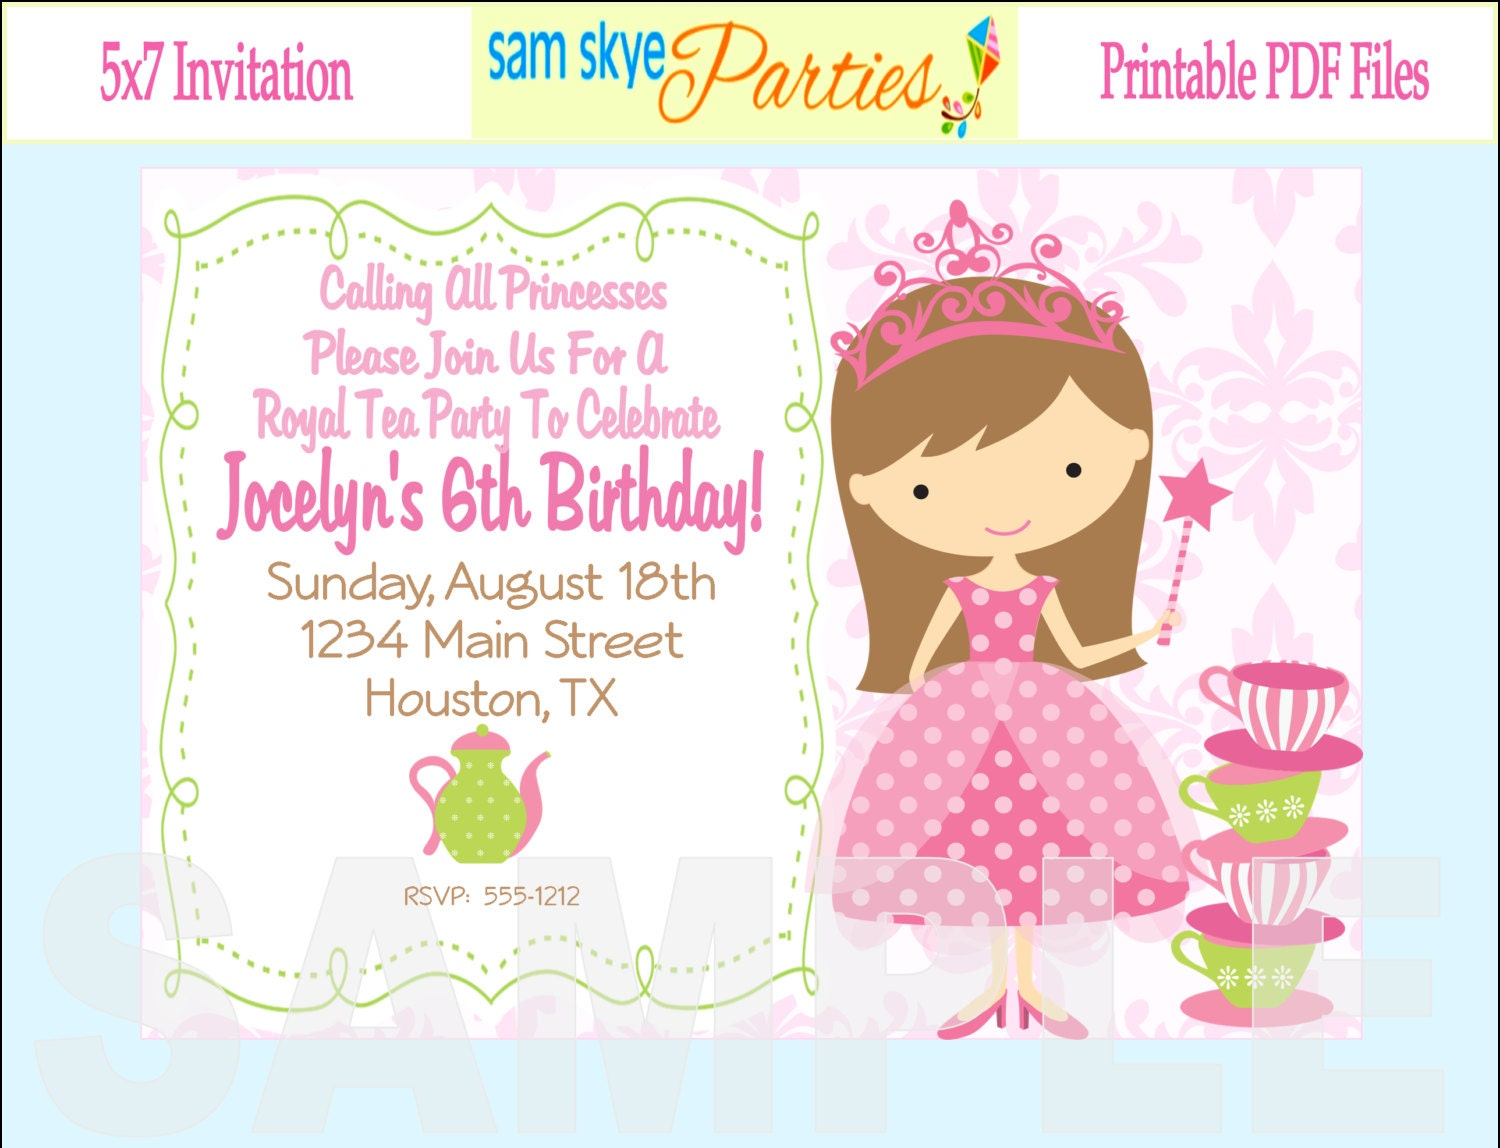 Princess Tea Party Invitations could be nice ideas for your invitation template